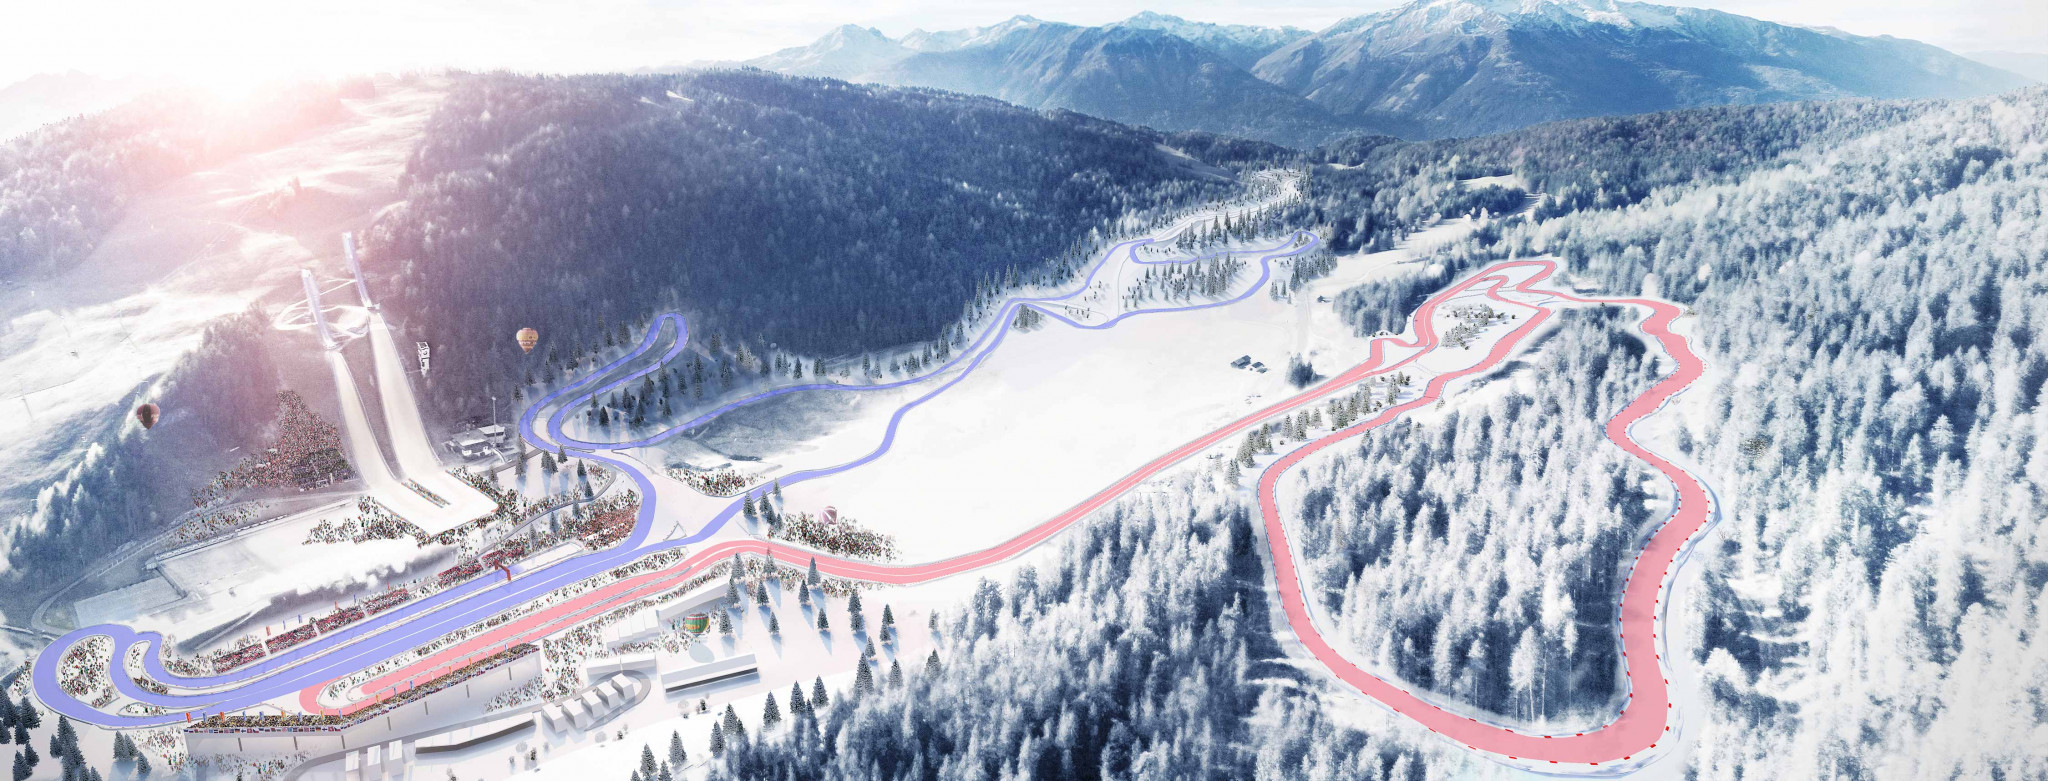 Seefeld is due to host the 2019 FIS Nordic World Ski Championships from February 19 to March 3 ©Seefeld 2019